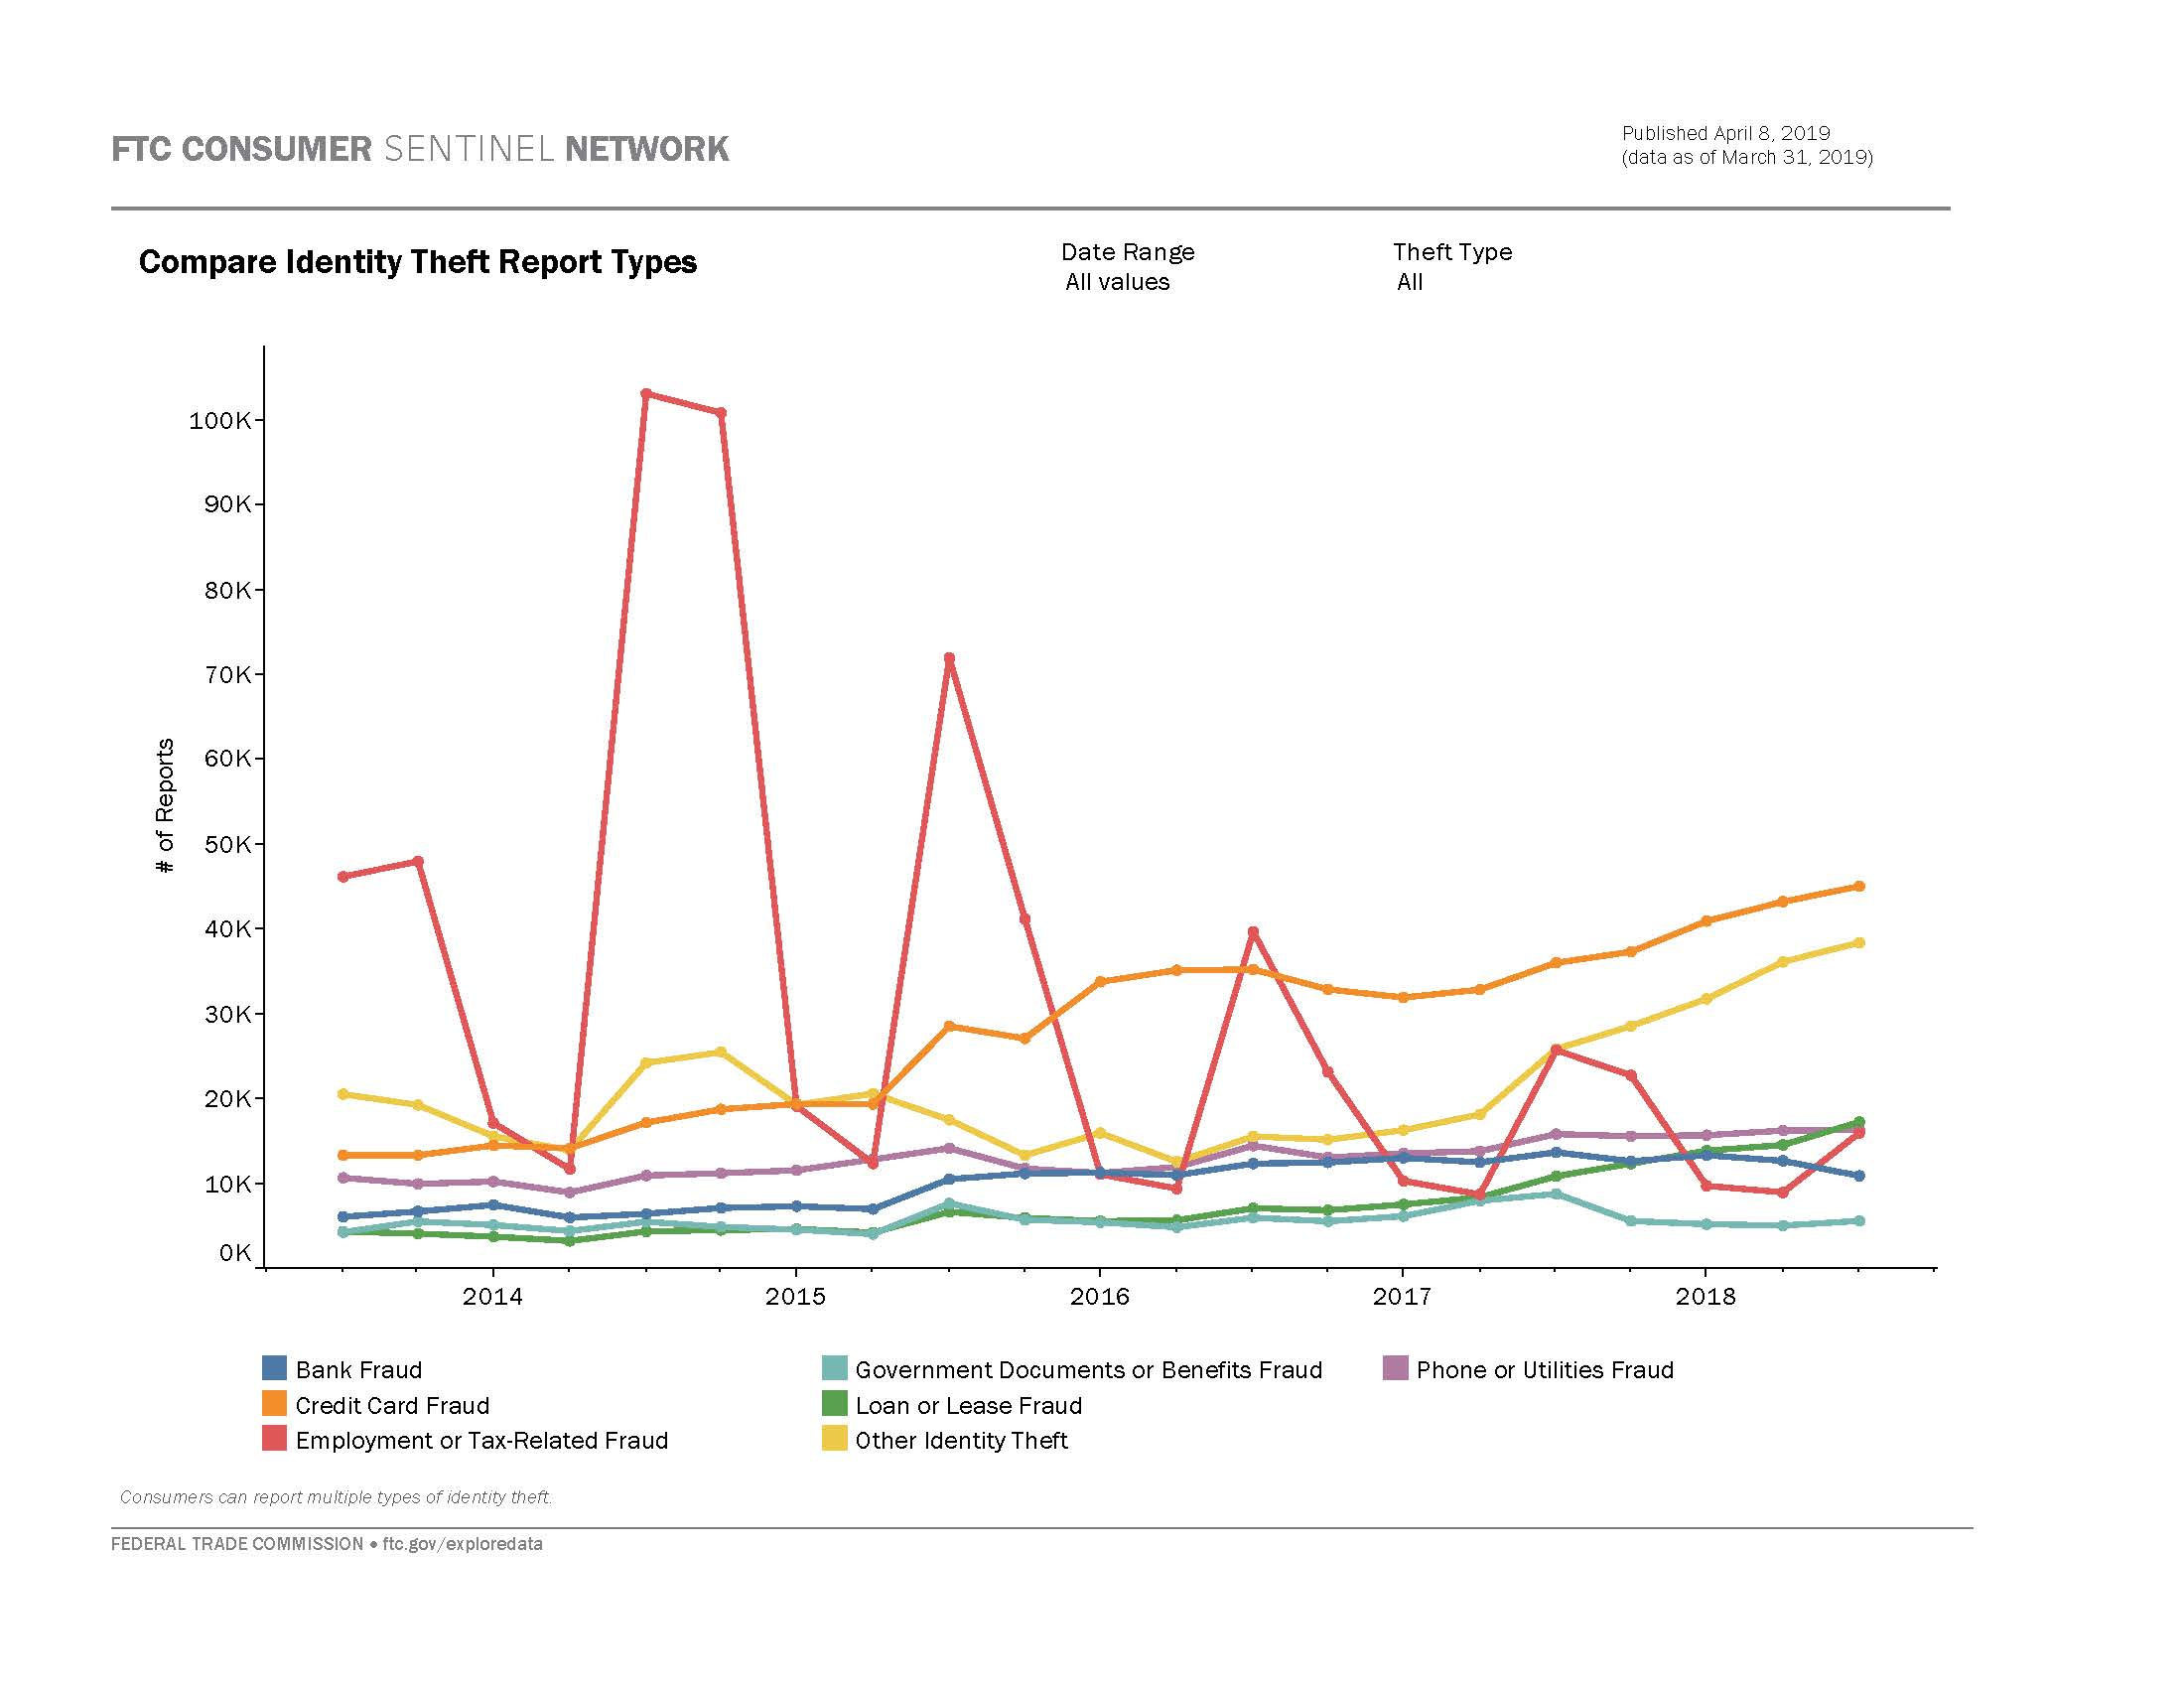 Link to interactive dashboard showing number of id theft reports by theft type over time.